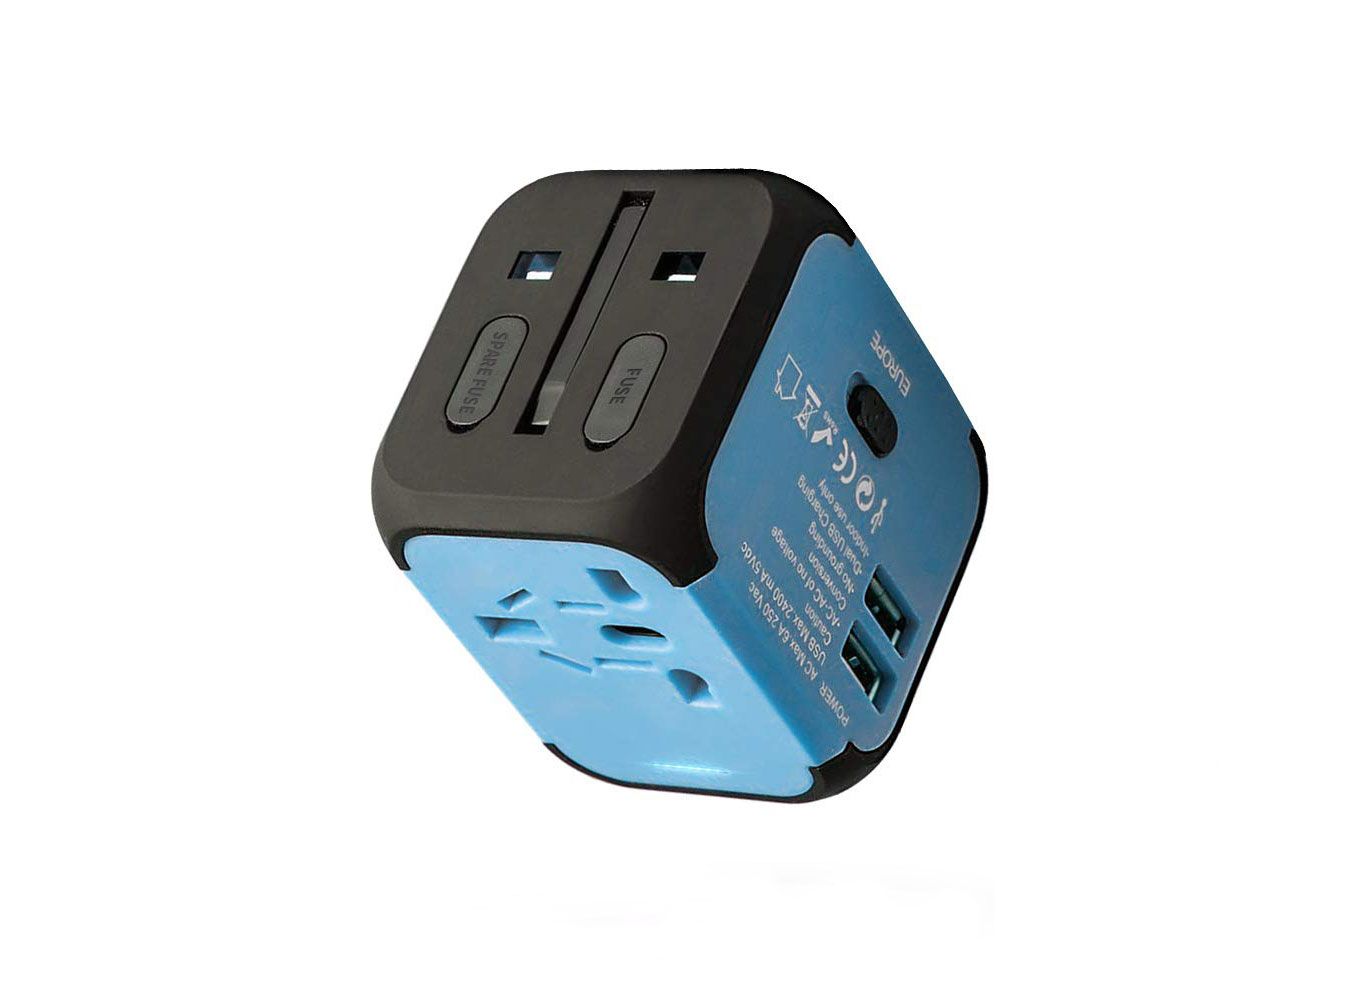 All-in-one Worldwide Travel Adapter on Amazon